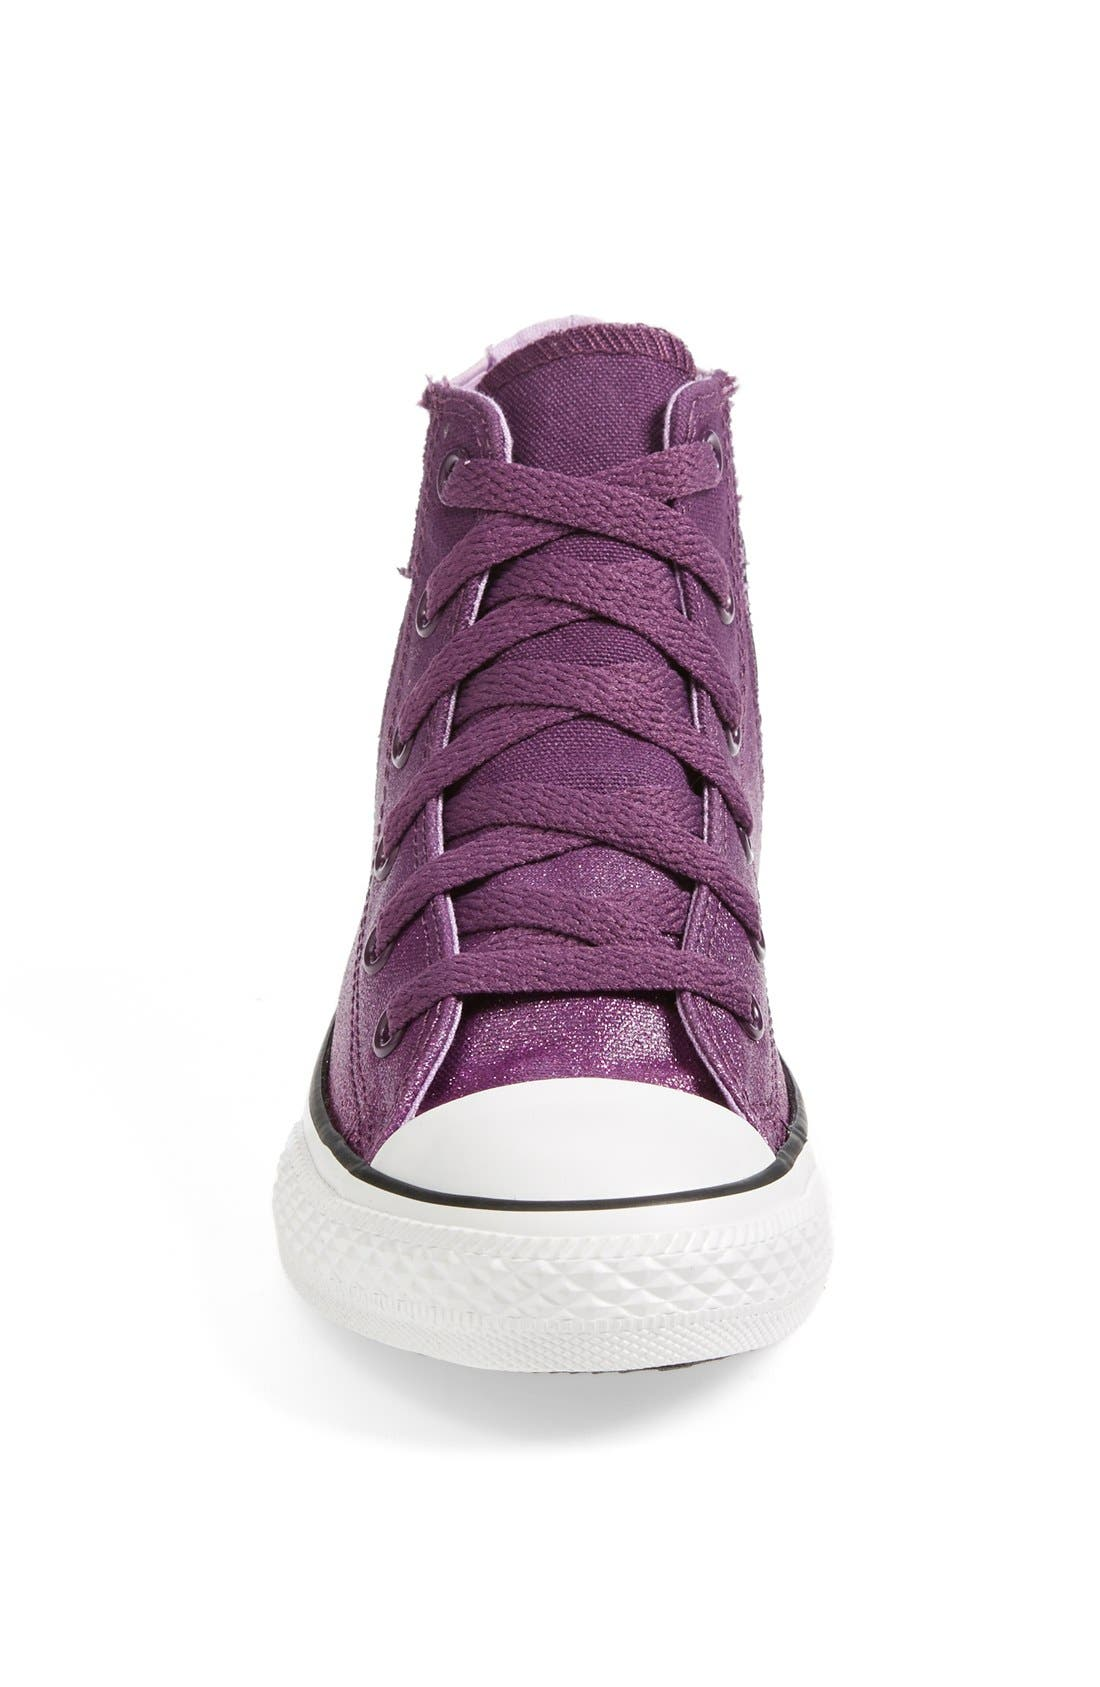 Alternate Image 3  - Converse Chuck Taylor® All Star® 'Sparkle Wash Boltz' High Top Sneaker (Toddler, Little Kid & Big Kid)